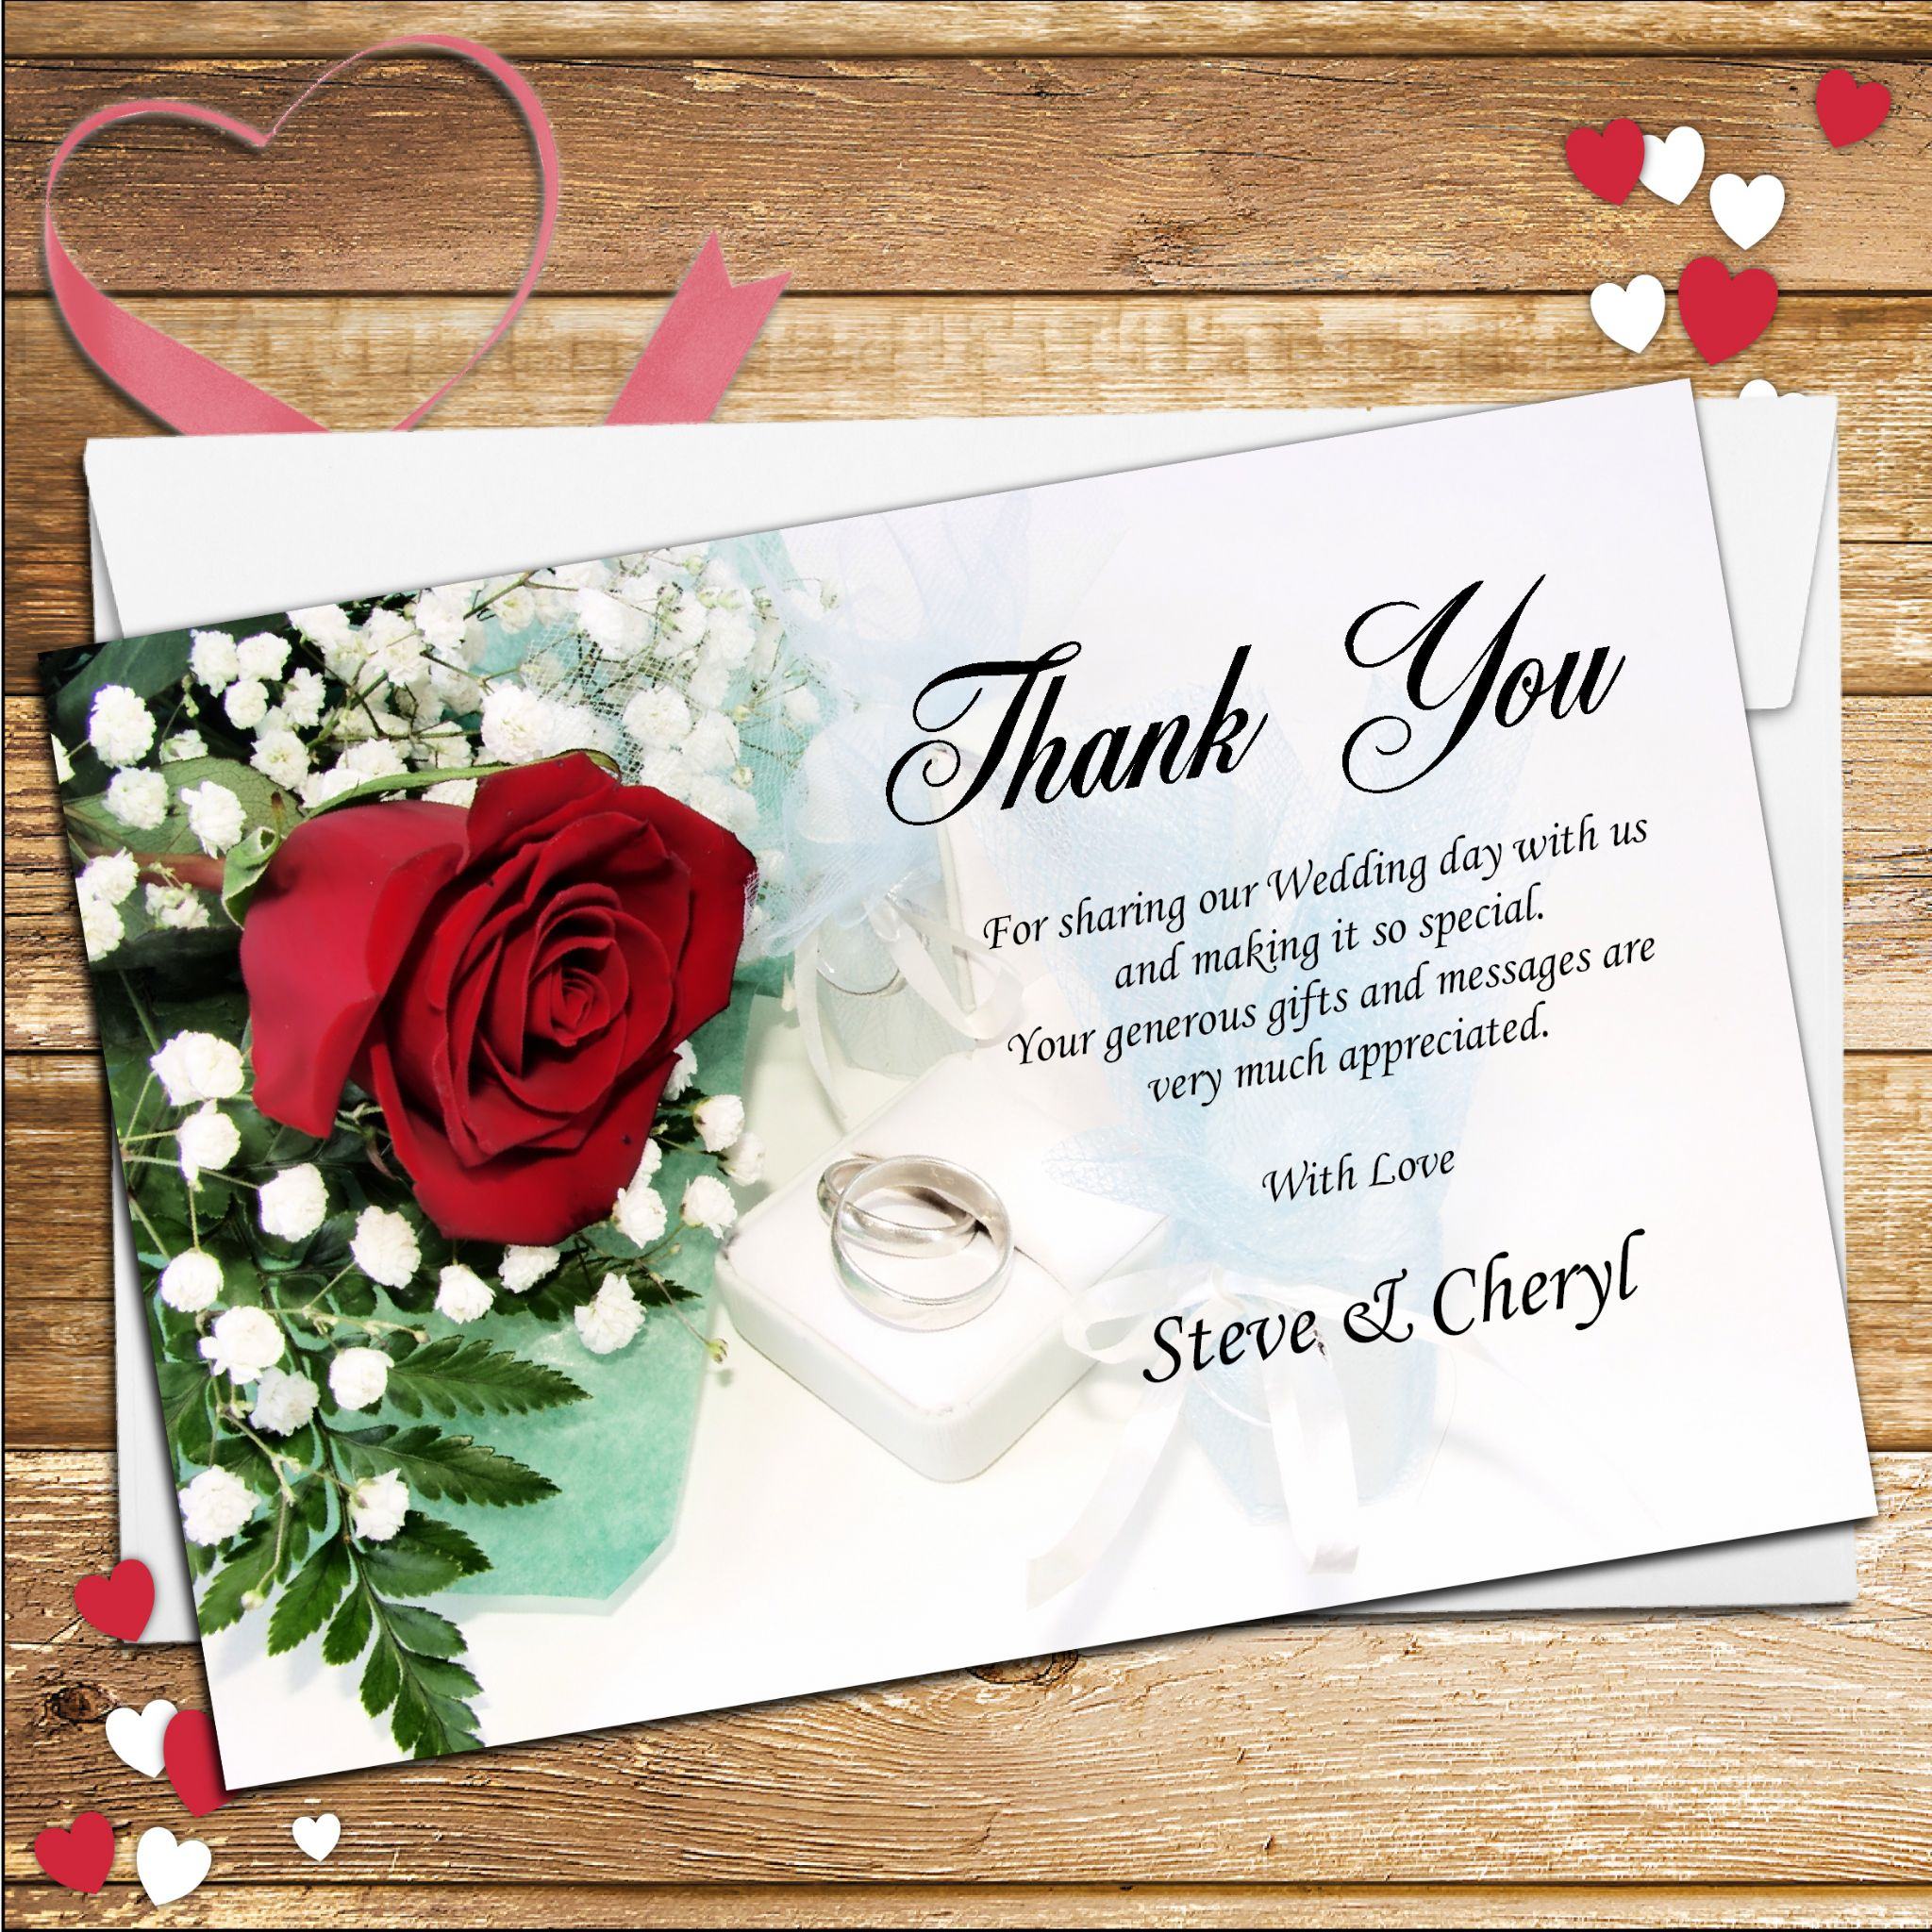 10 Personalised Red Rose Wedding Day Thank You Cards N120